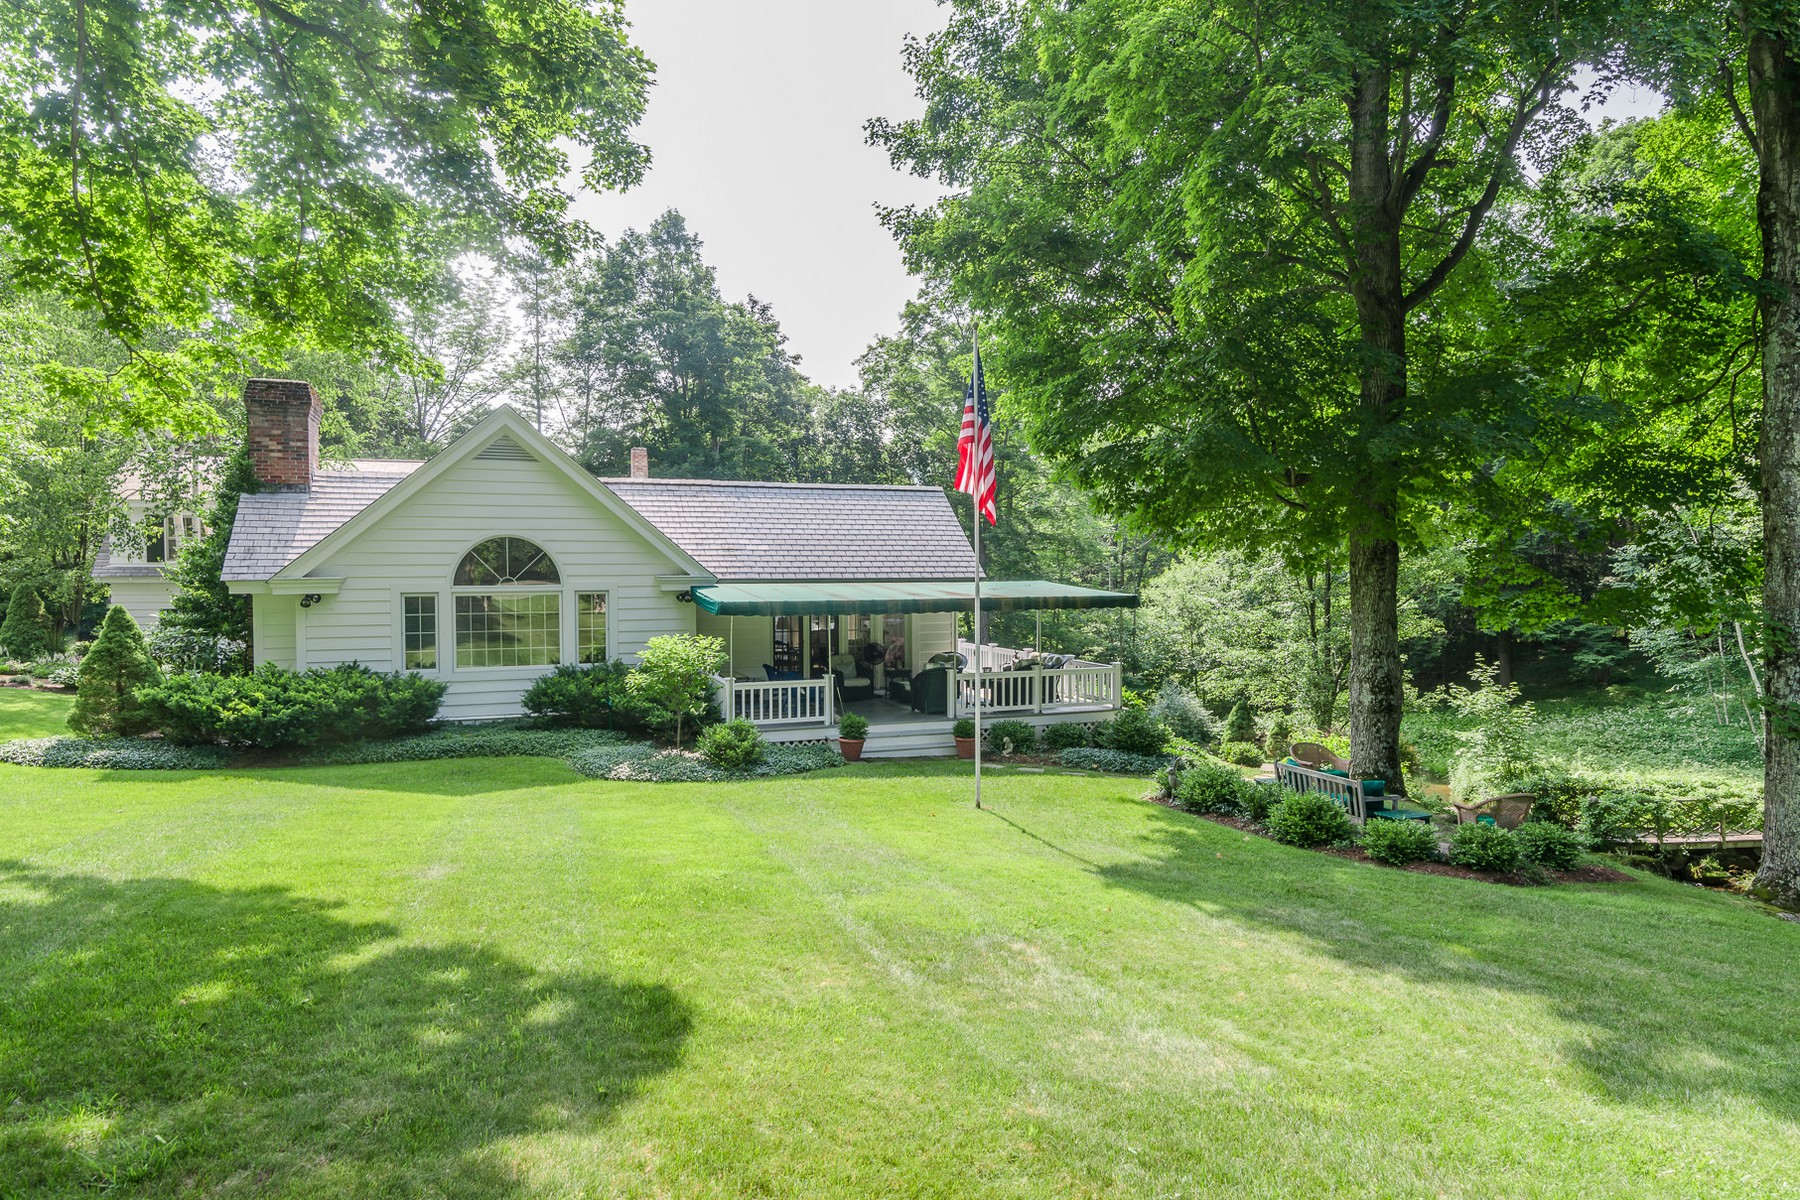 Single Family Home for Sale at 271 Prospect Street, Manchester Manchester, Vermont, 05254 United States